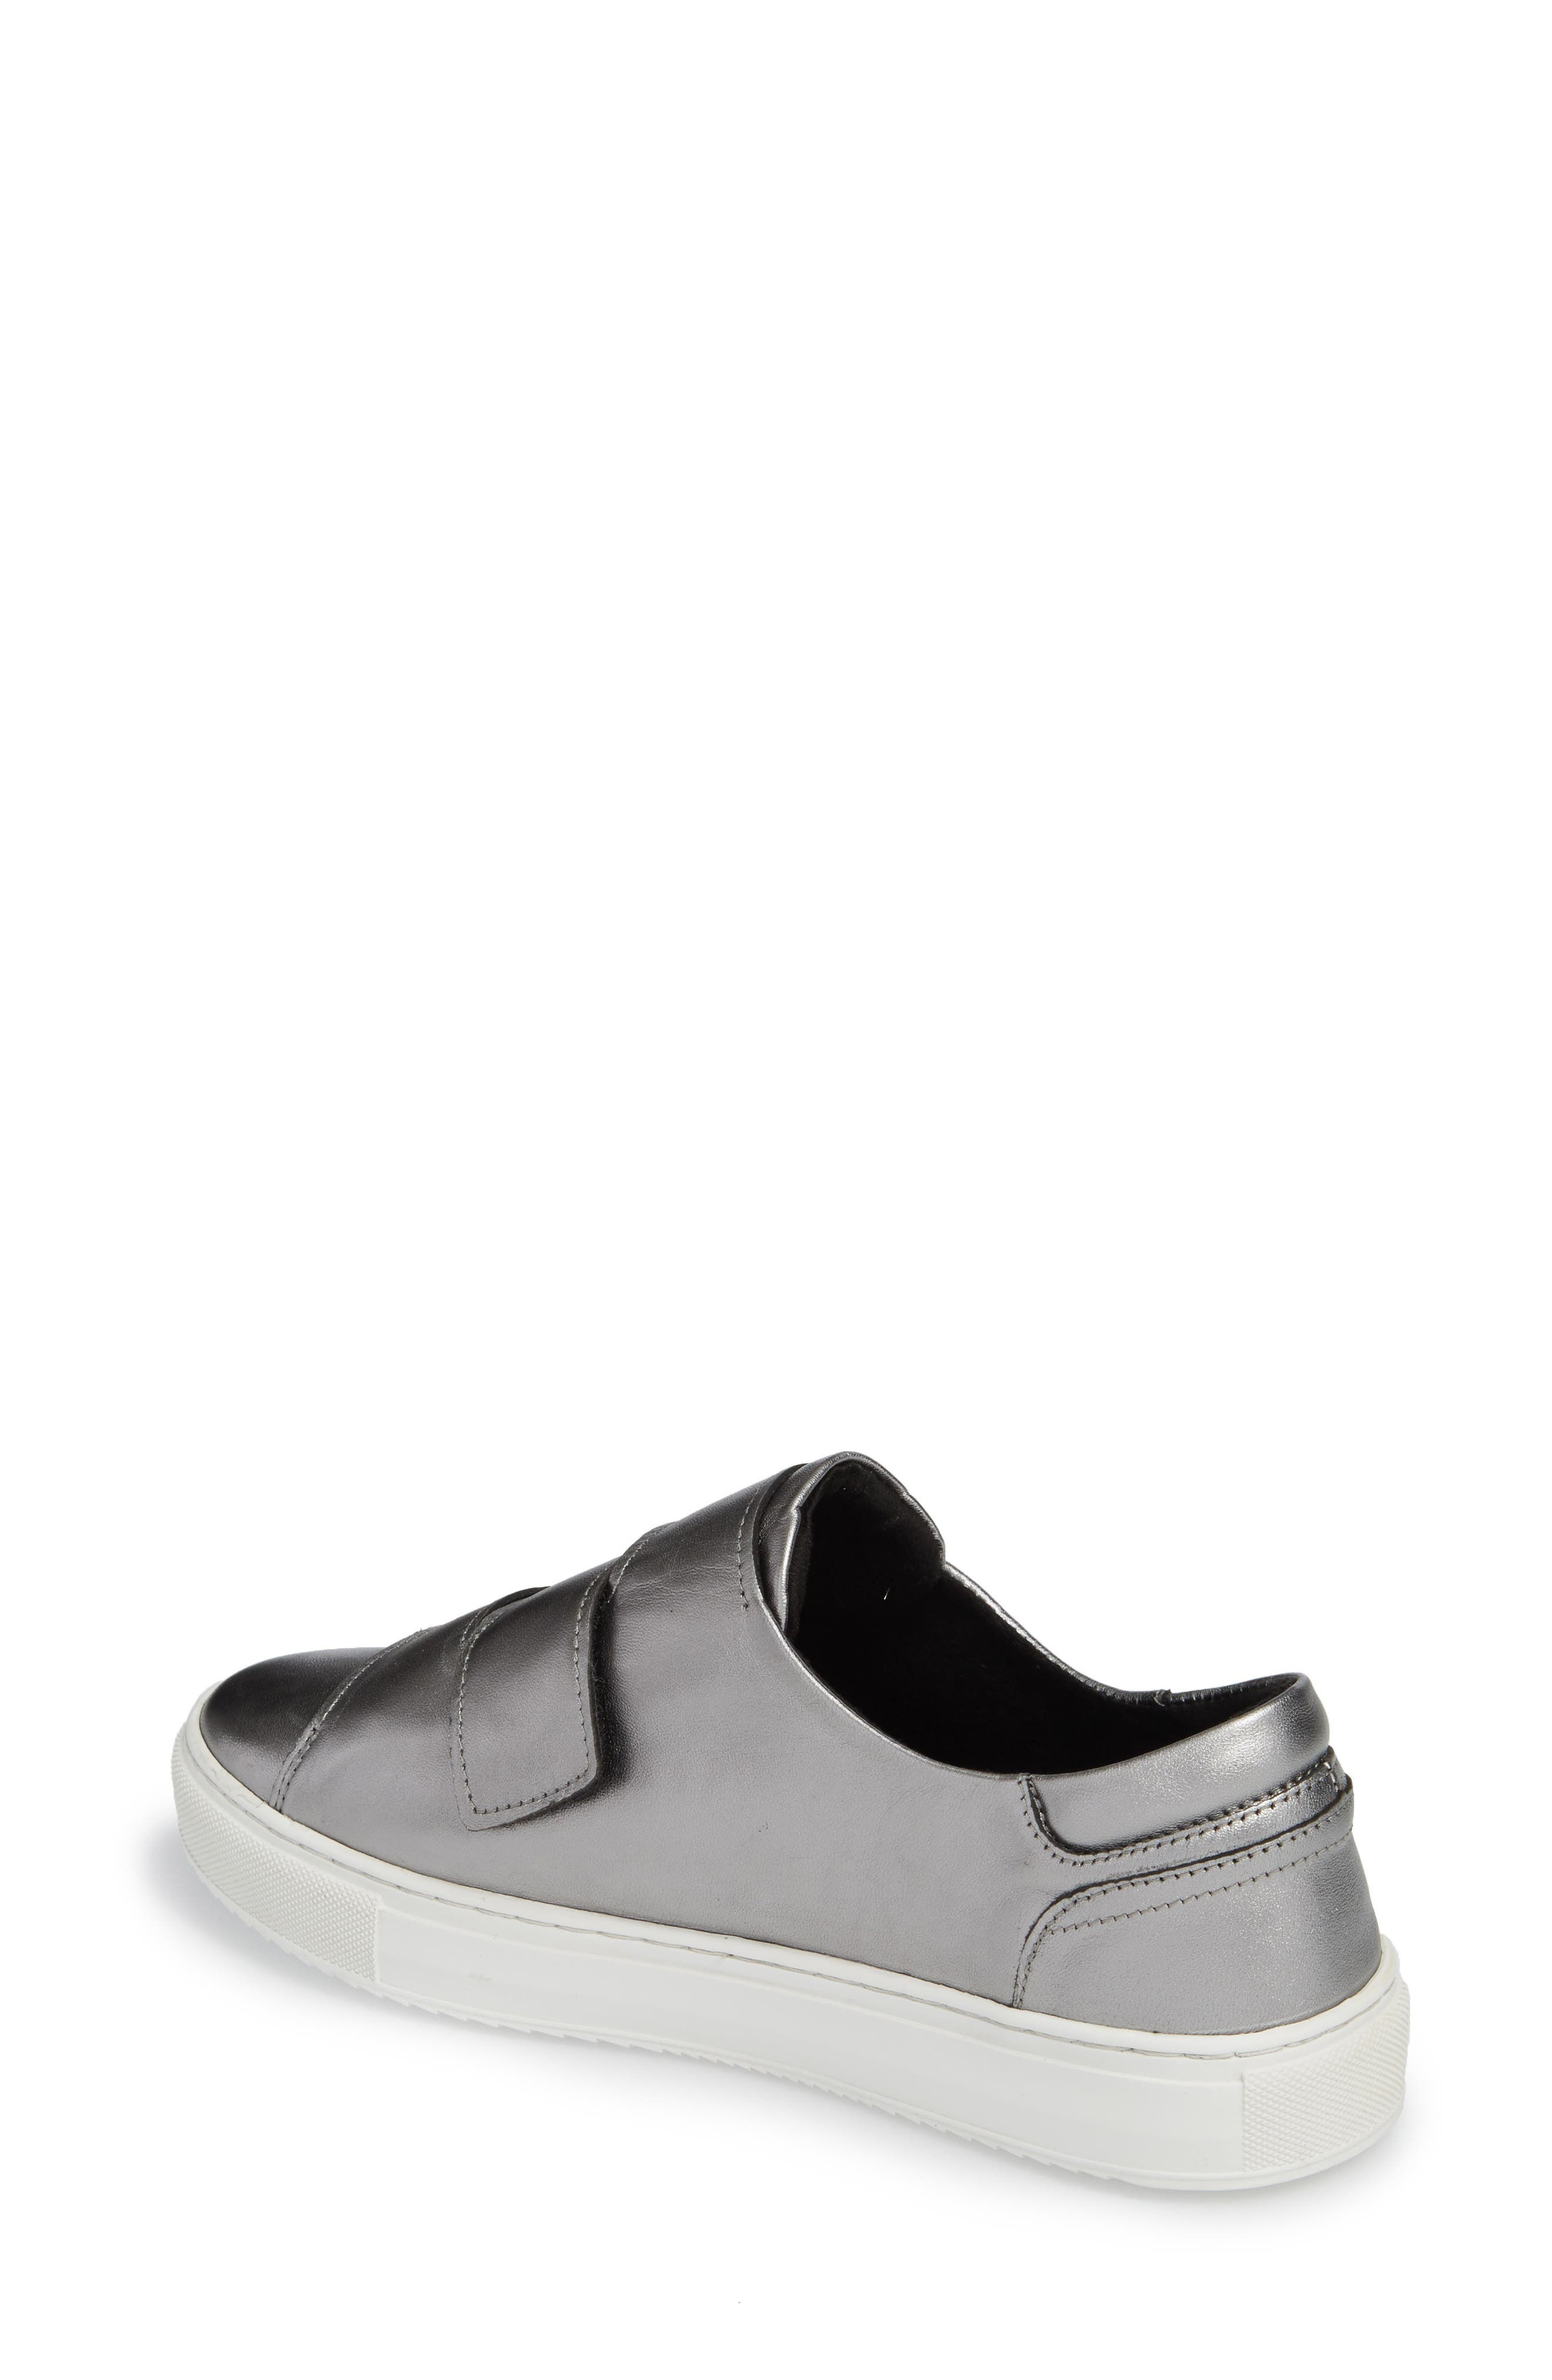 Rollover Alternating Strap Sneaker,                             Alternate thumbnail 4, color,